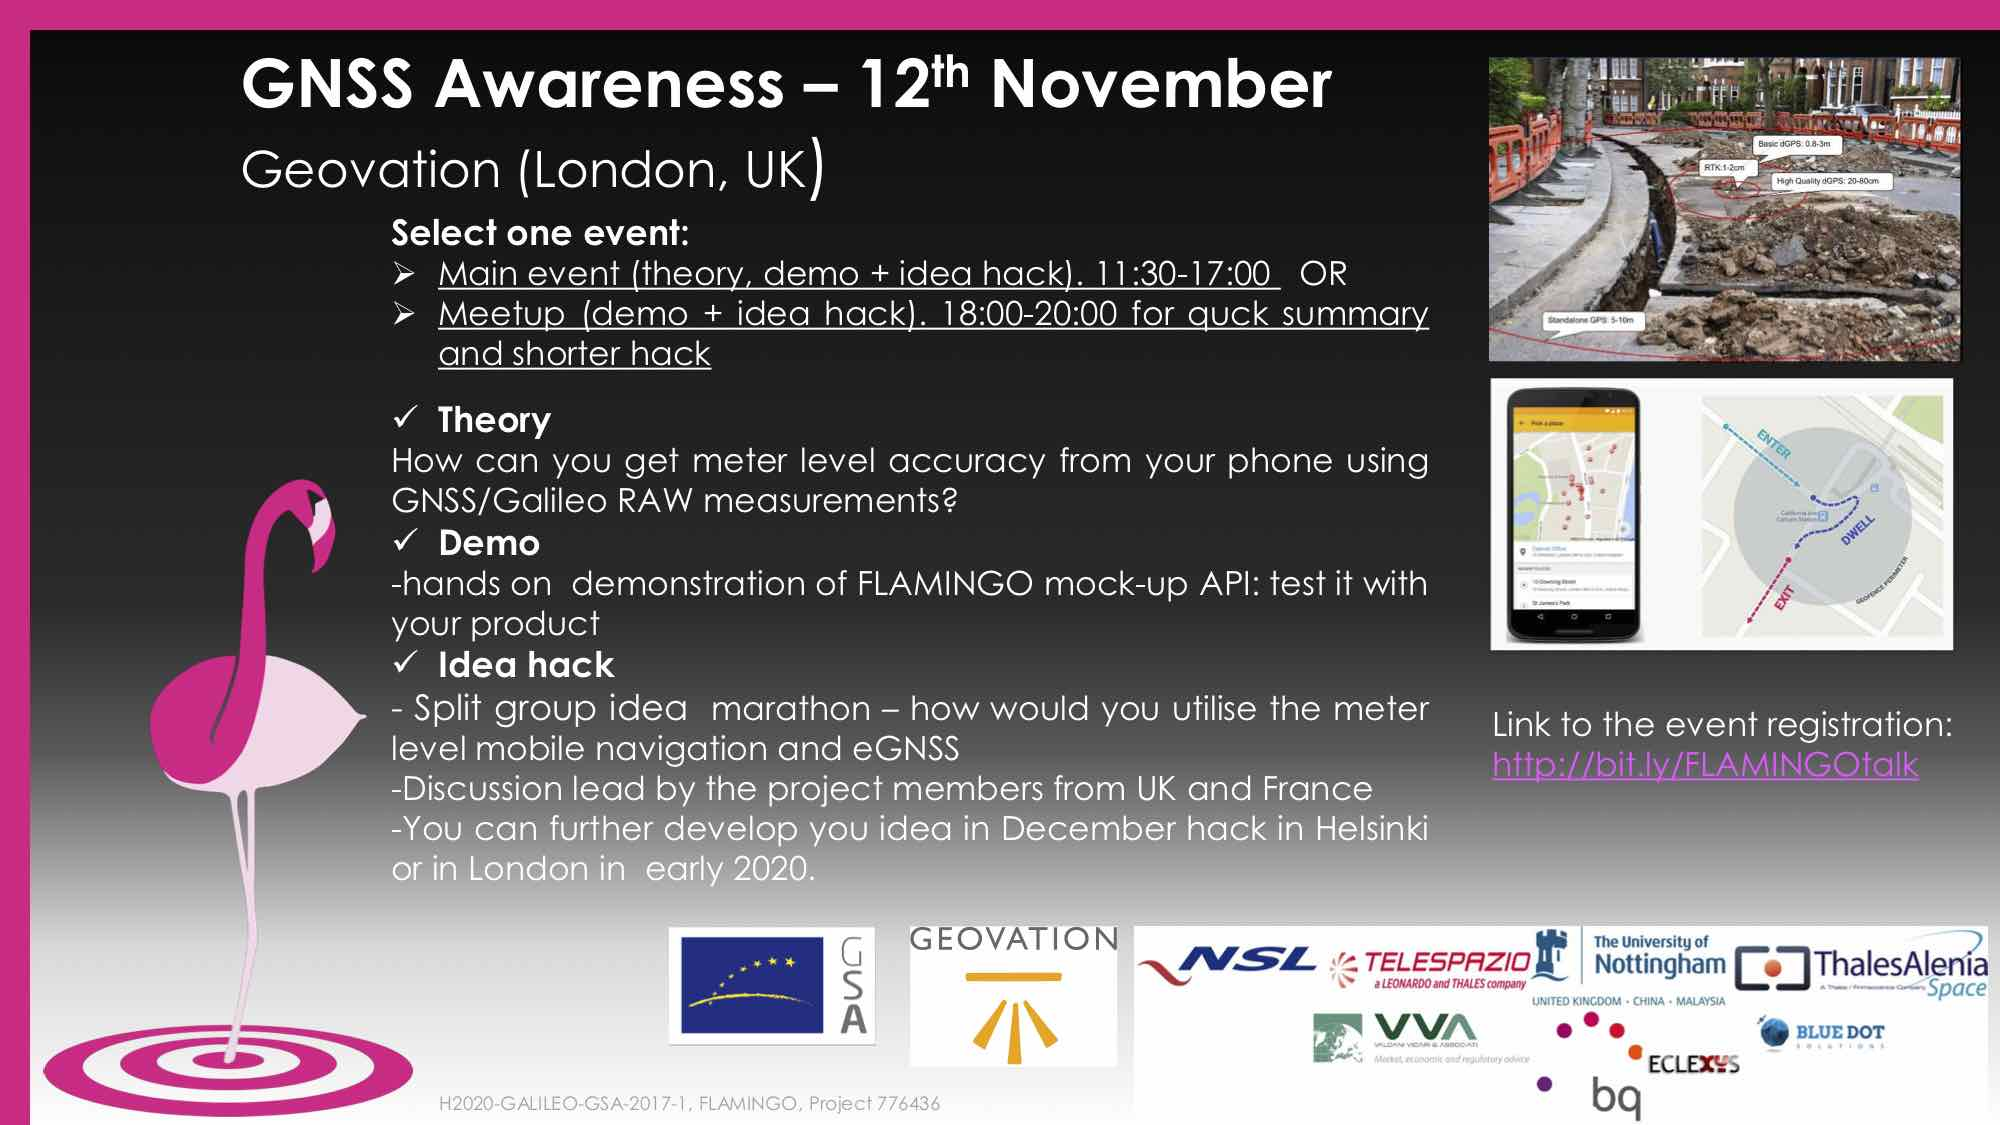 GNSS Awareness